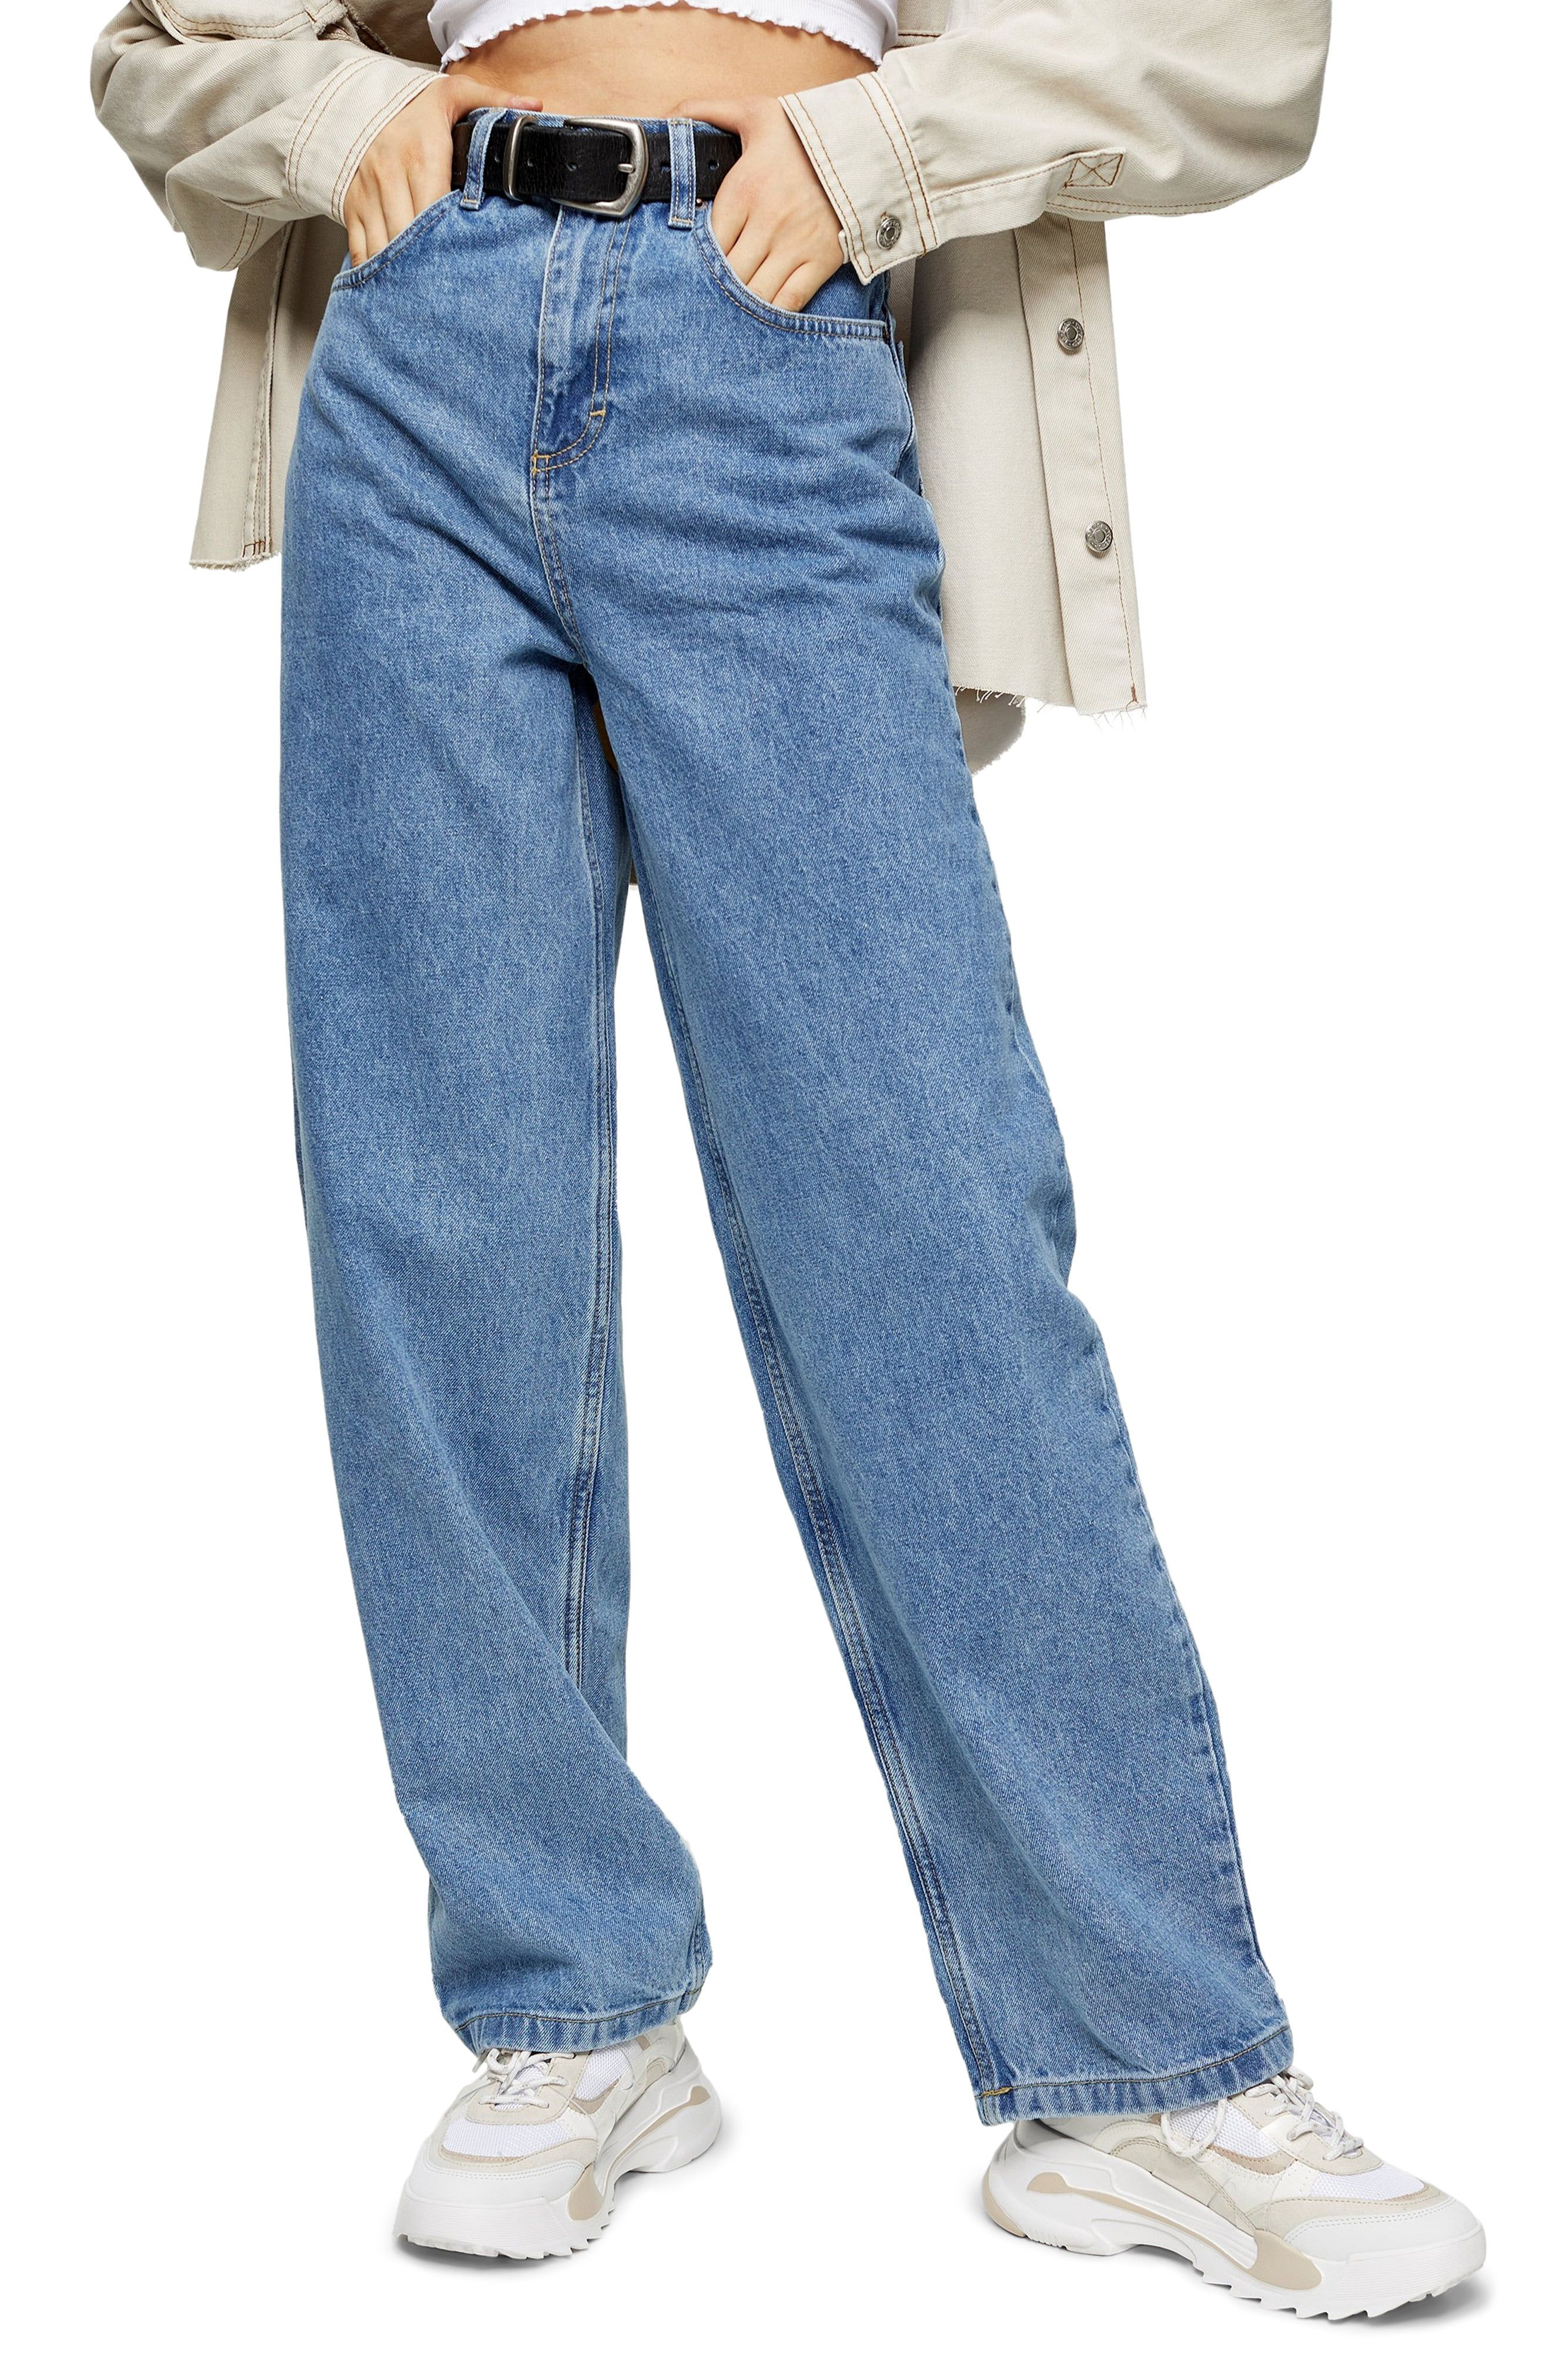 2020 New Women Jeans Casual Wedding Outfits Camo Cargo Trousers Mens Green Chinos White Outfits For Women